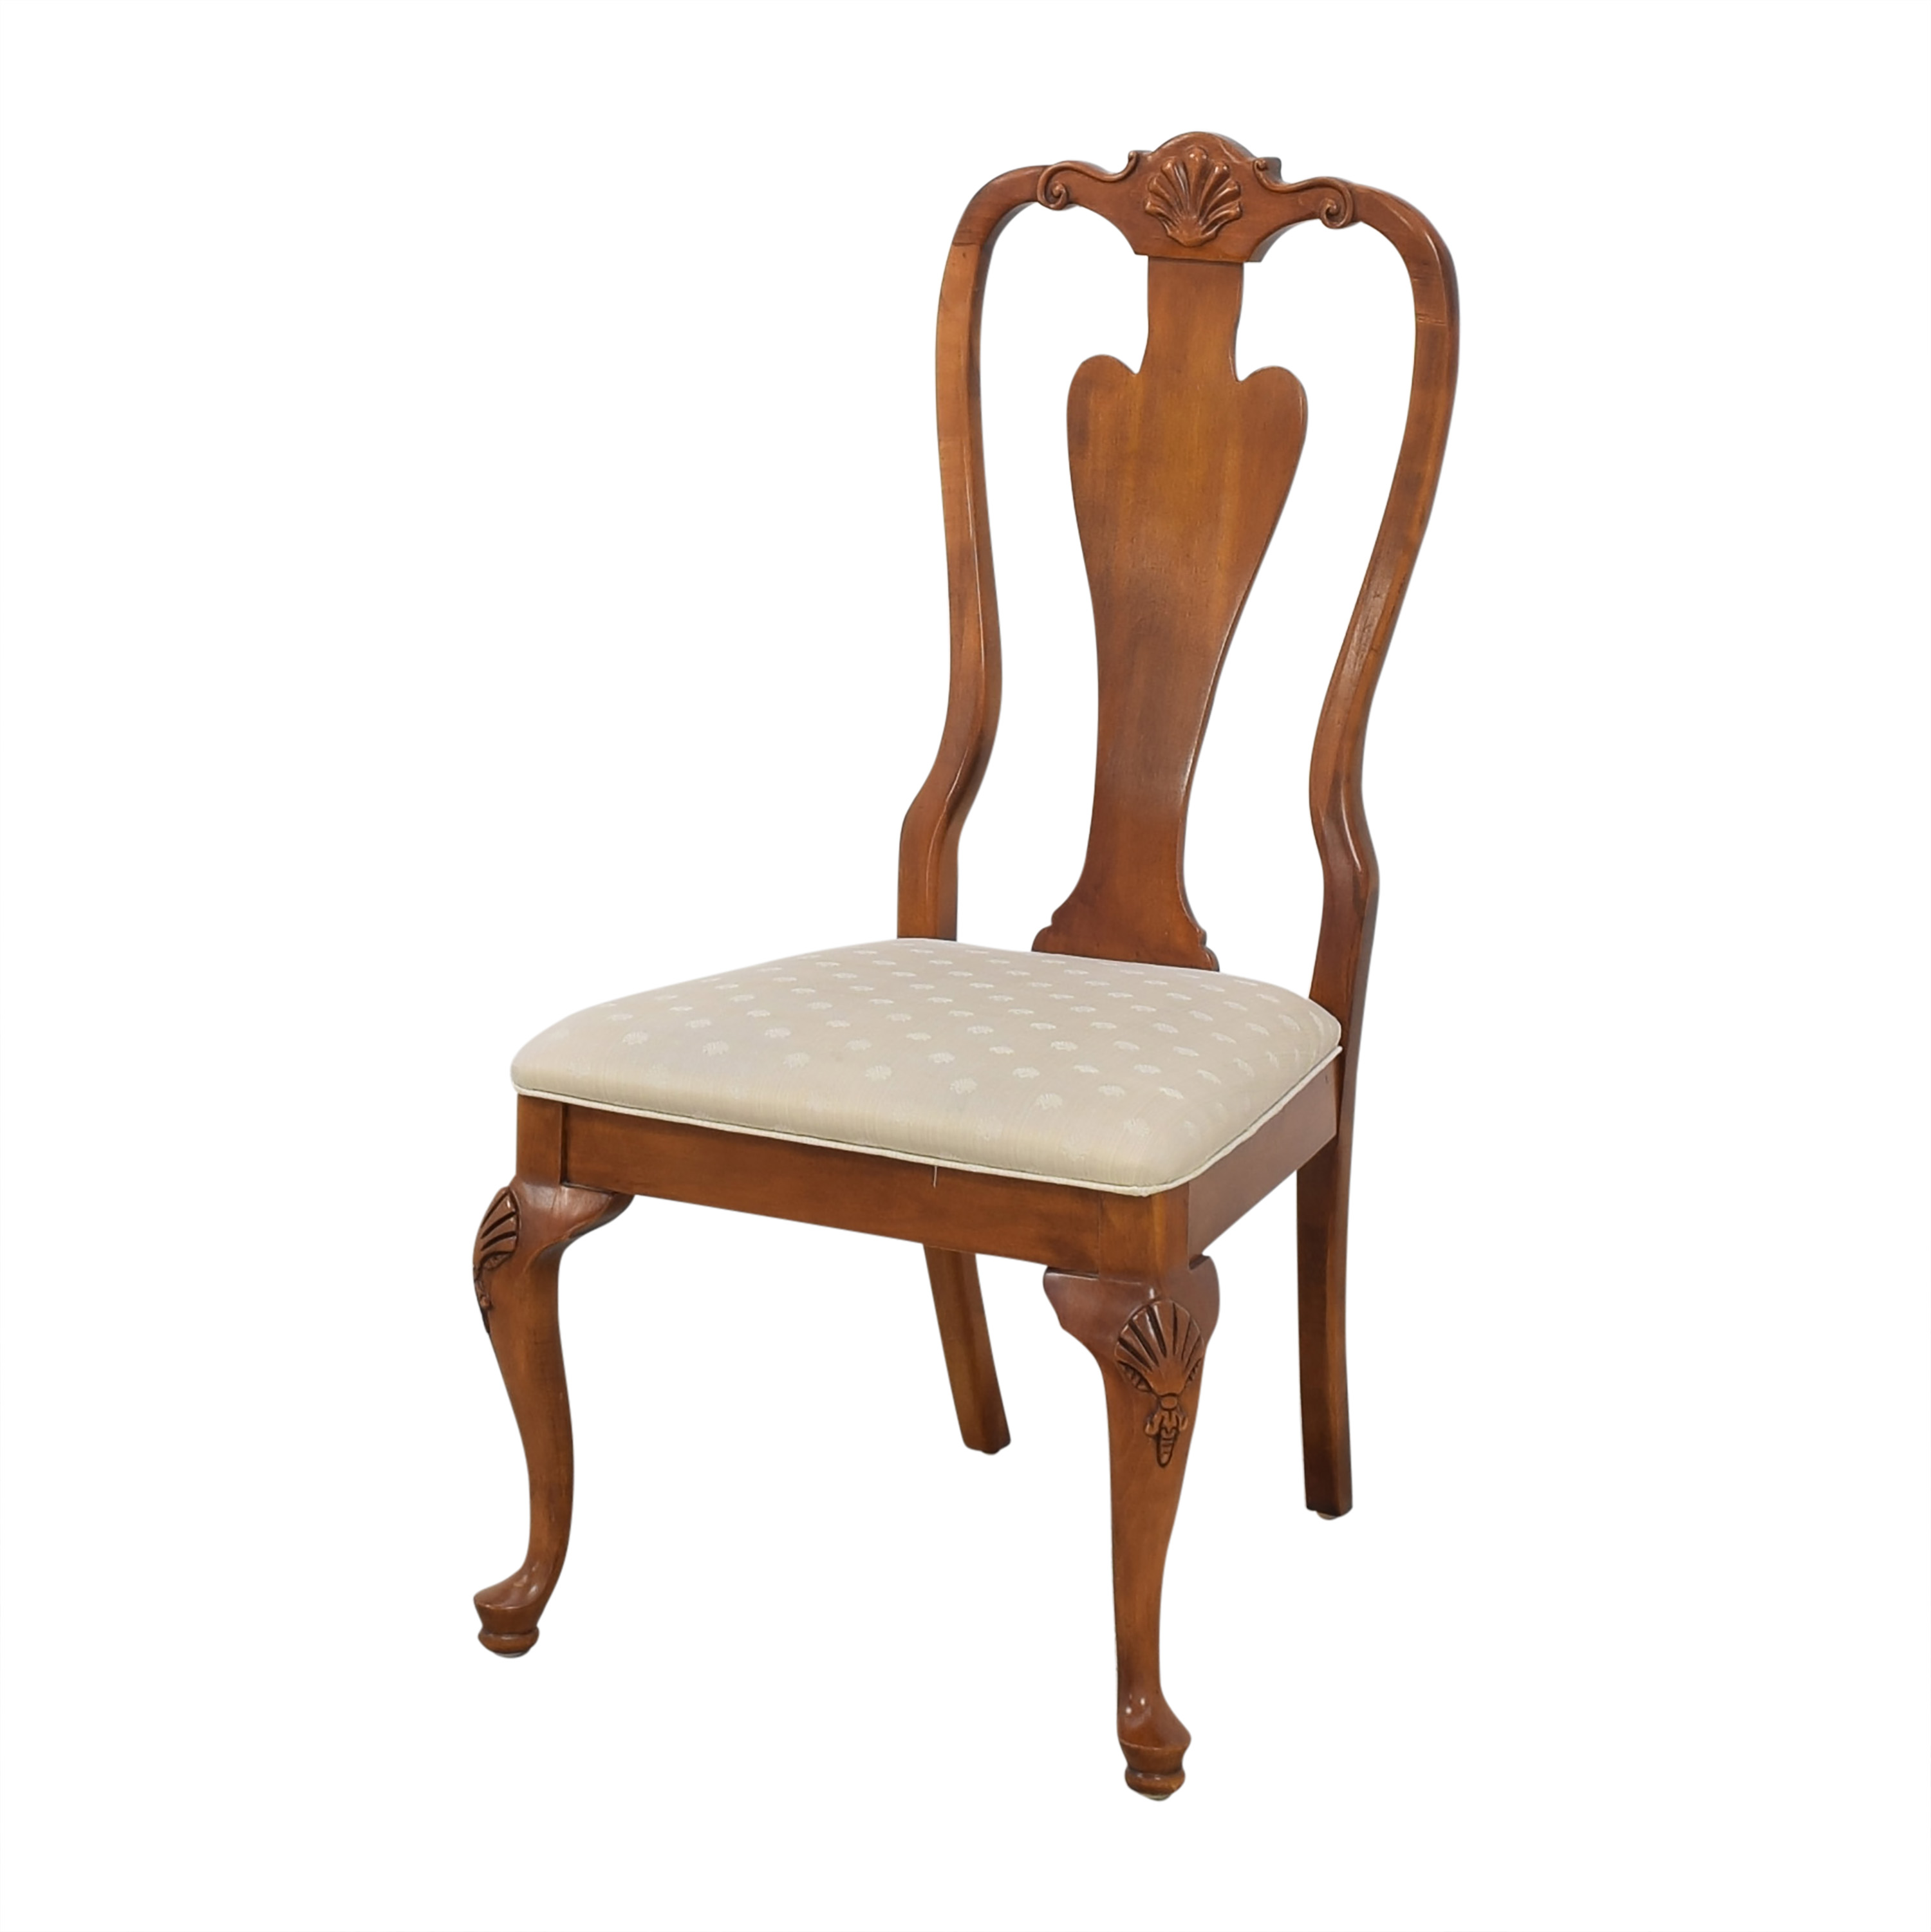 Broyhill Furniture Broyhill Premier Queen Anne Dining Chairs dimensions